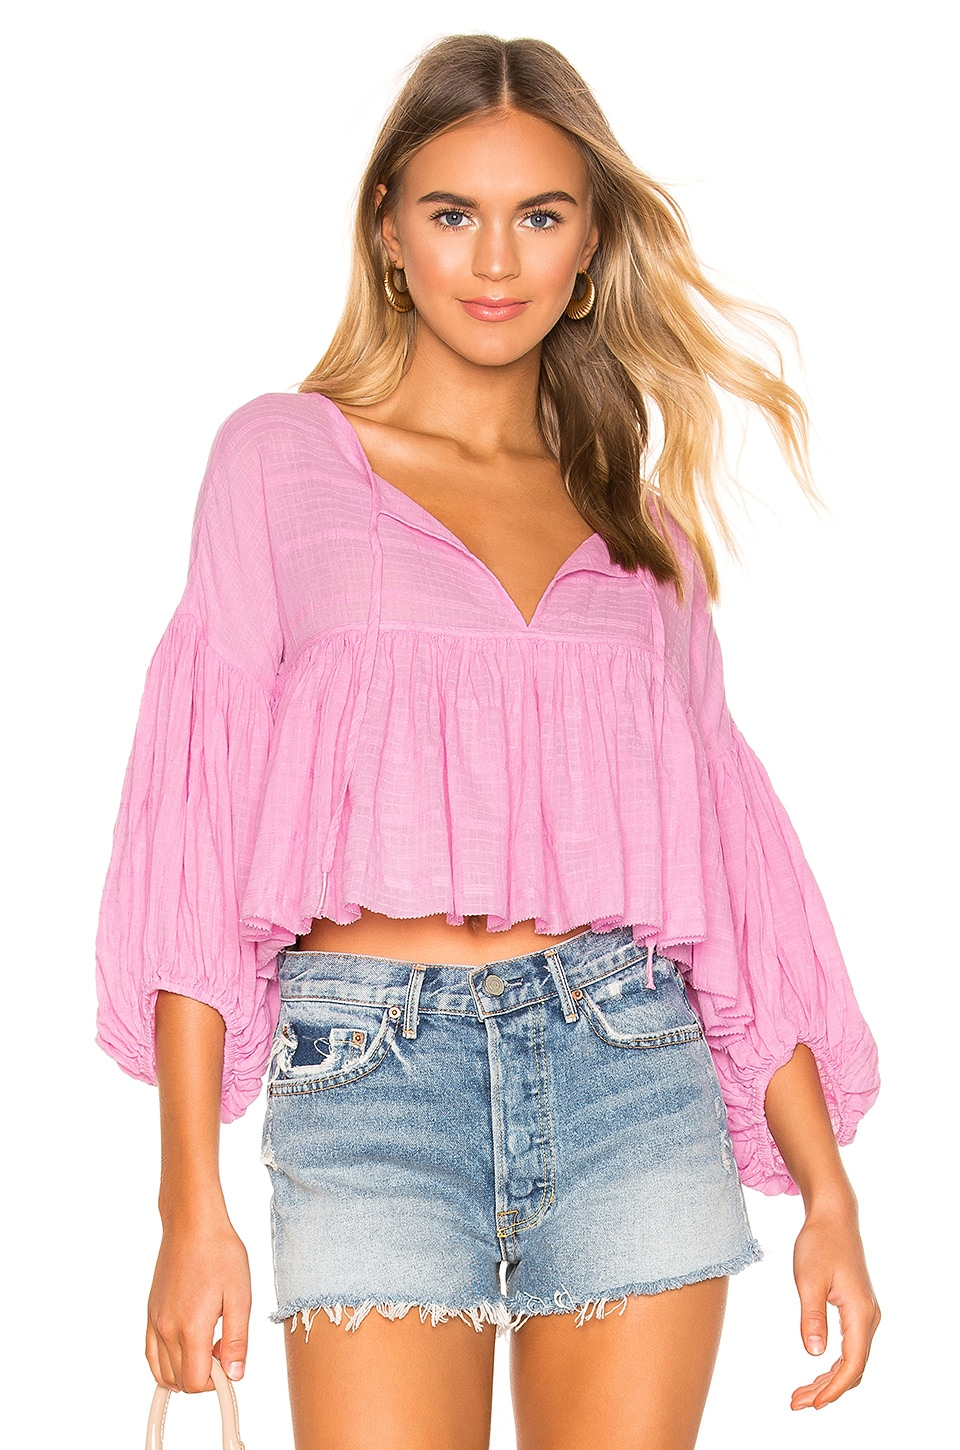 Free People Tops Beaumont Mews Blouse